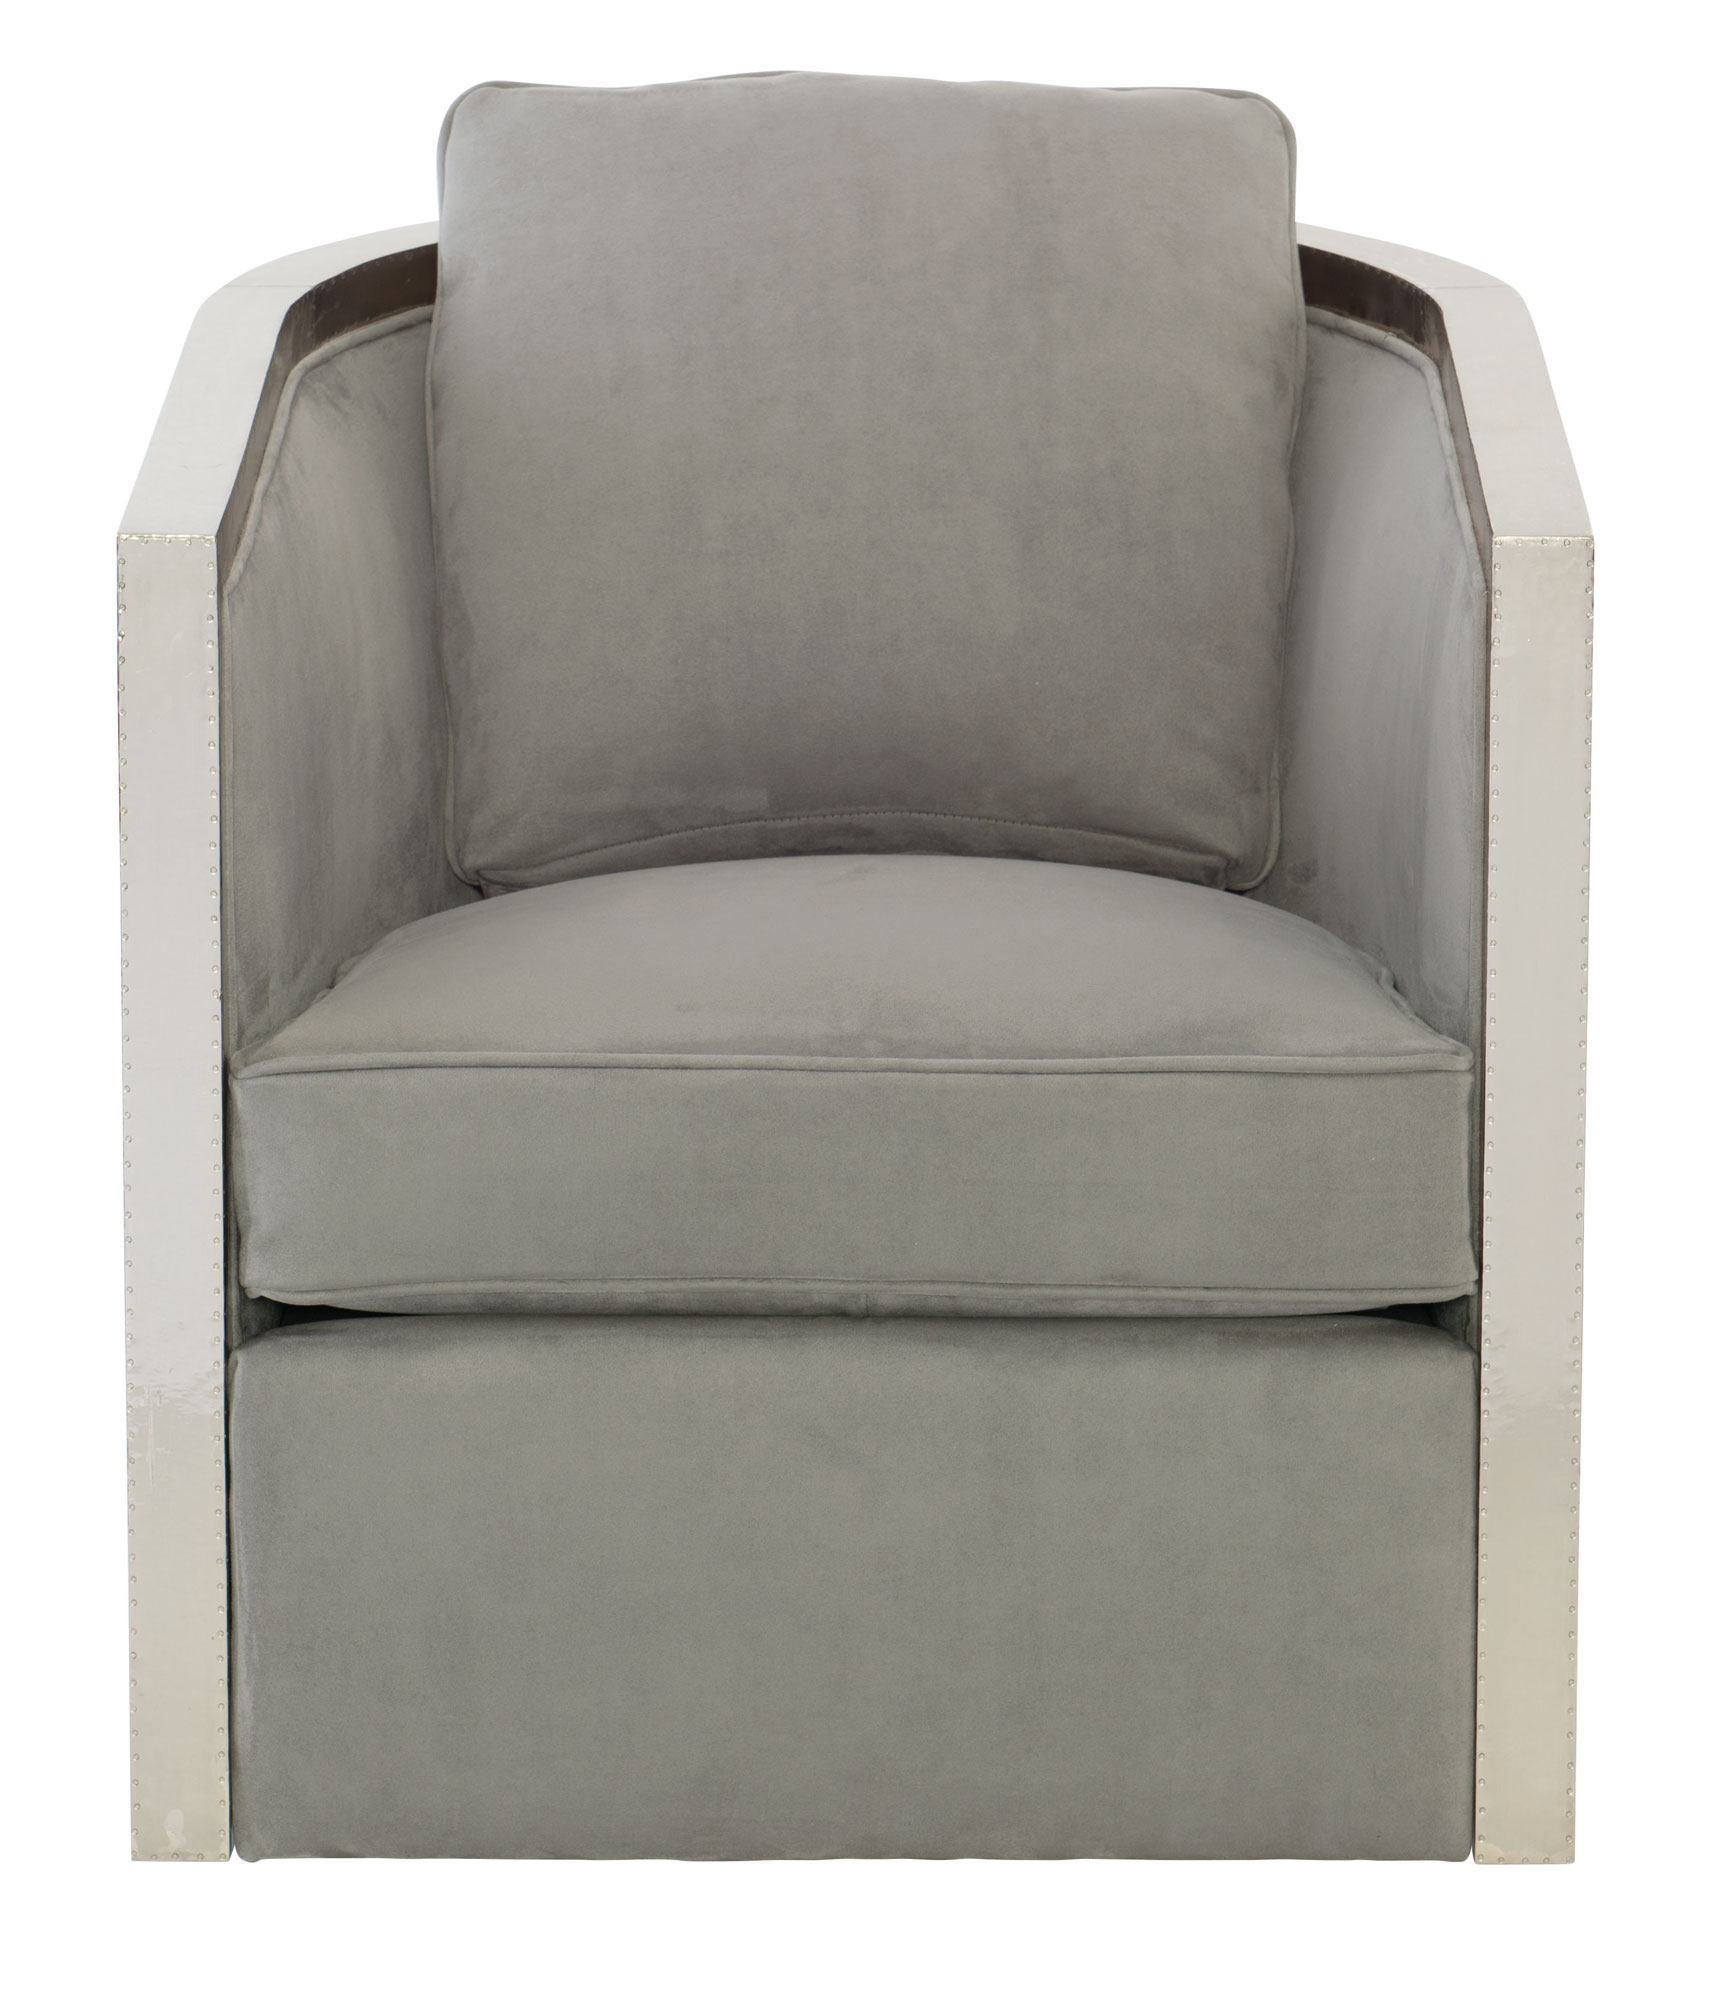 Bernhardt Chair Swivel Chair Bernhardt